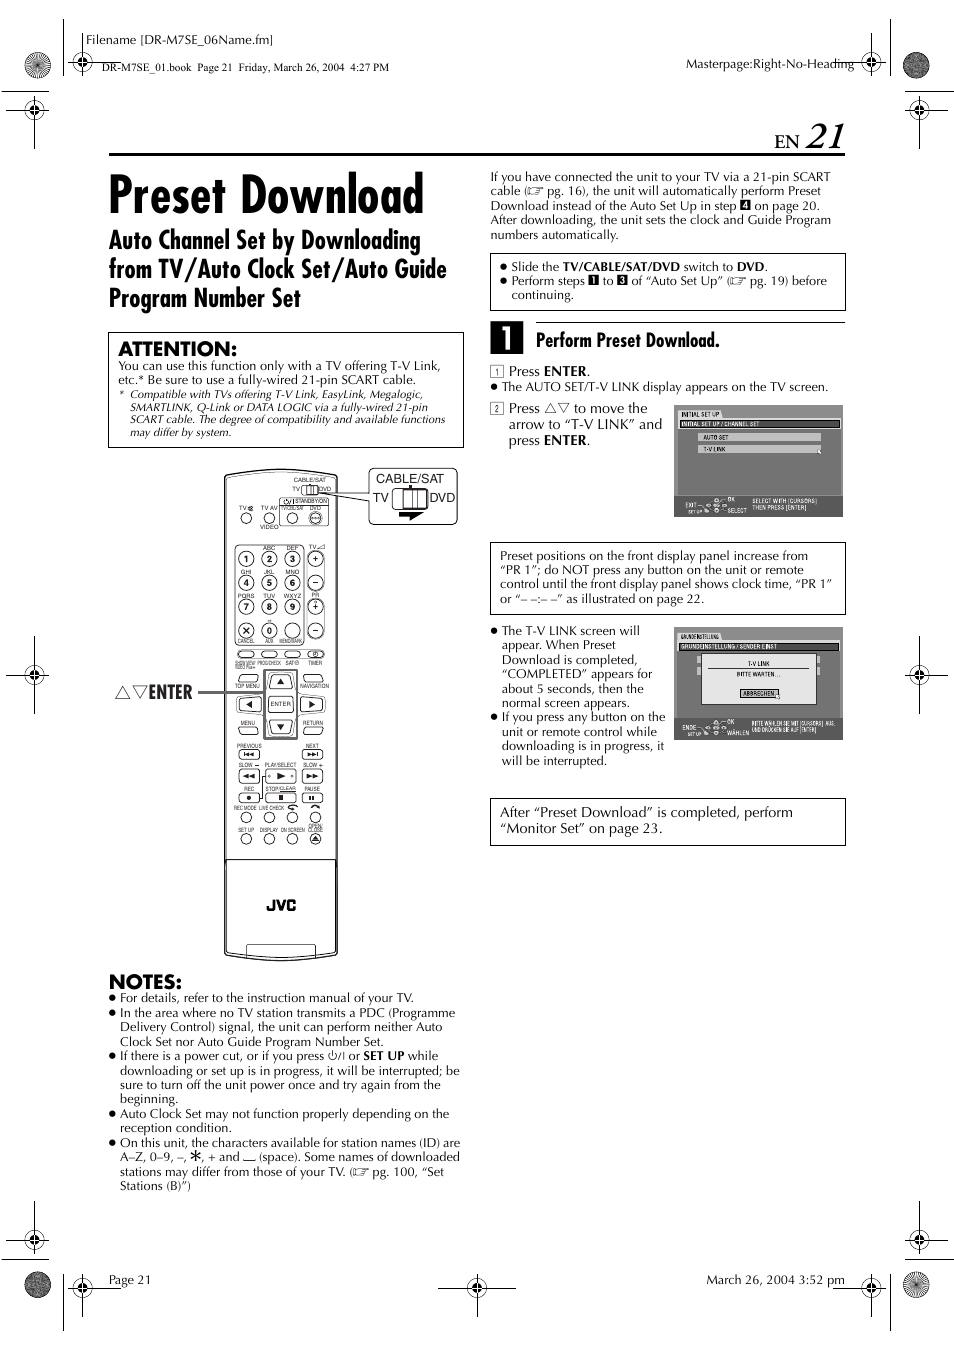 Preset download, Wnload function, Pg. 21) | JVC DR-M7S User Manual | Page  21 / 116 | Original mode